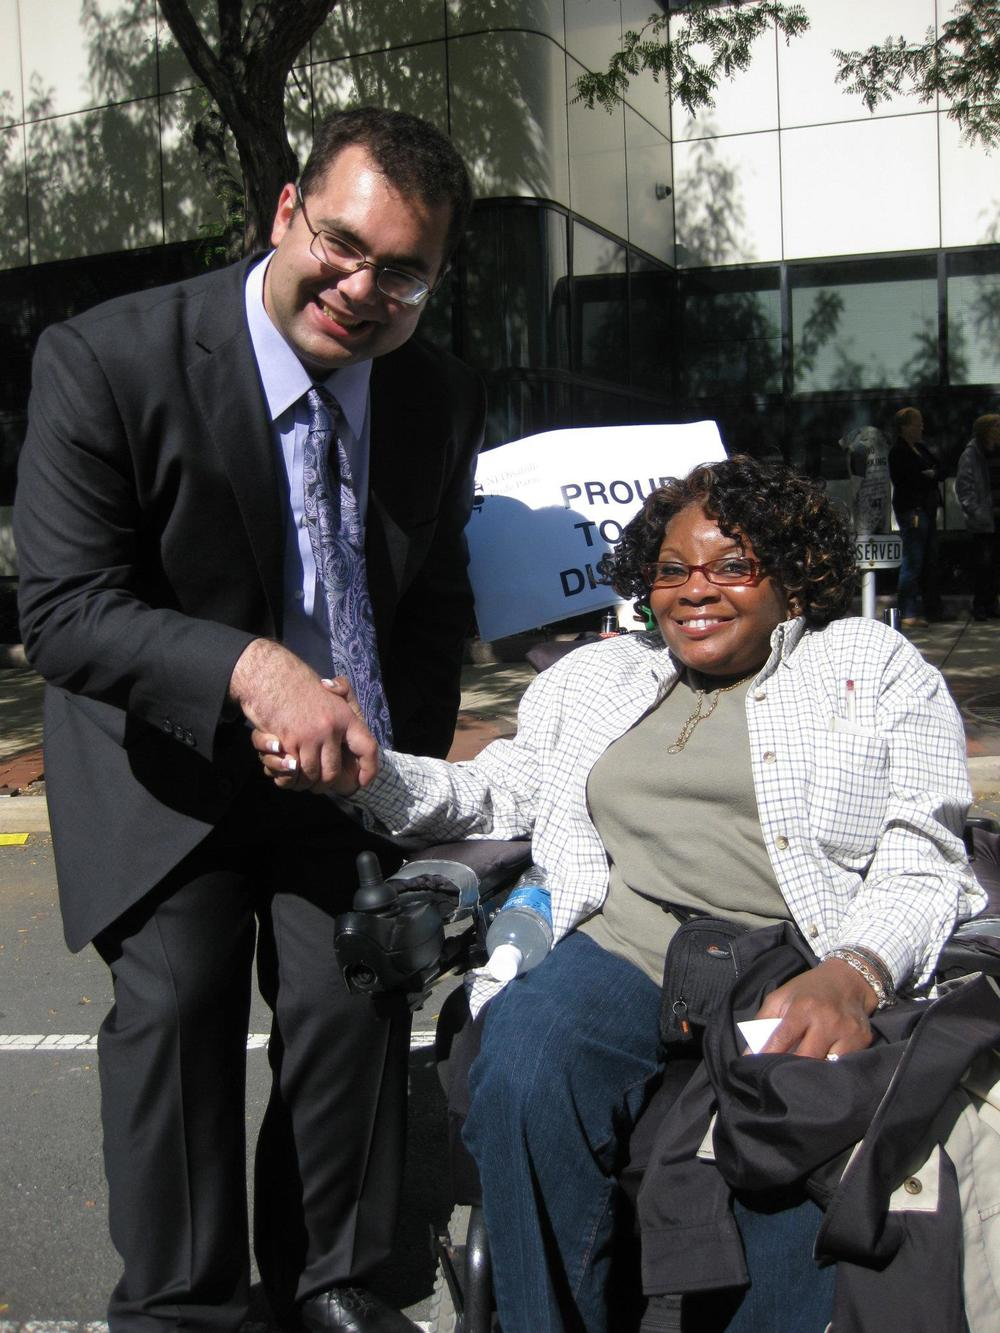 Ari Ne'eman and Diane Purnell at the NJ Disability Pride Parade.